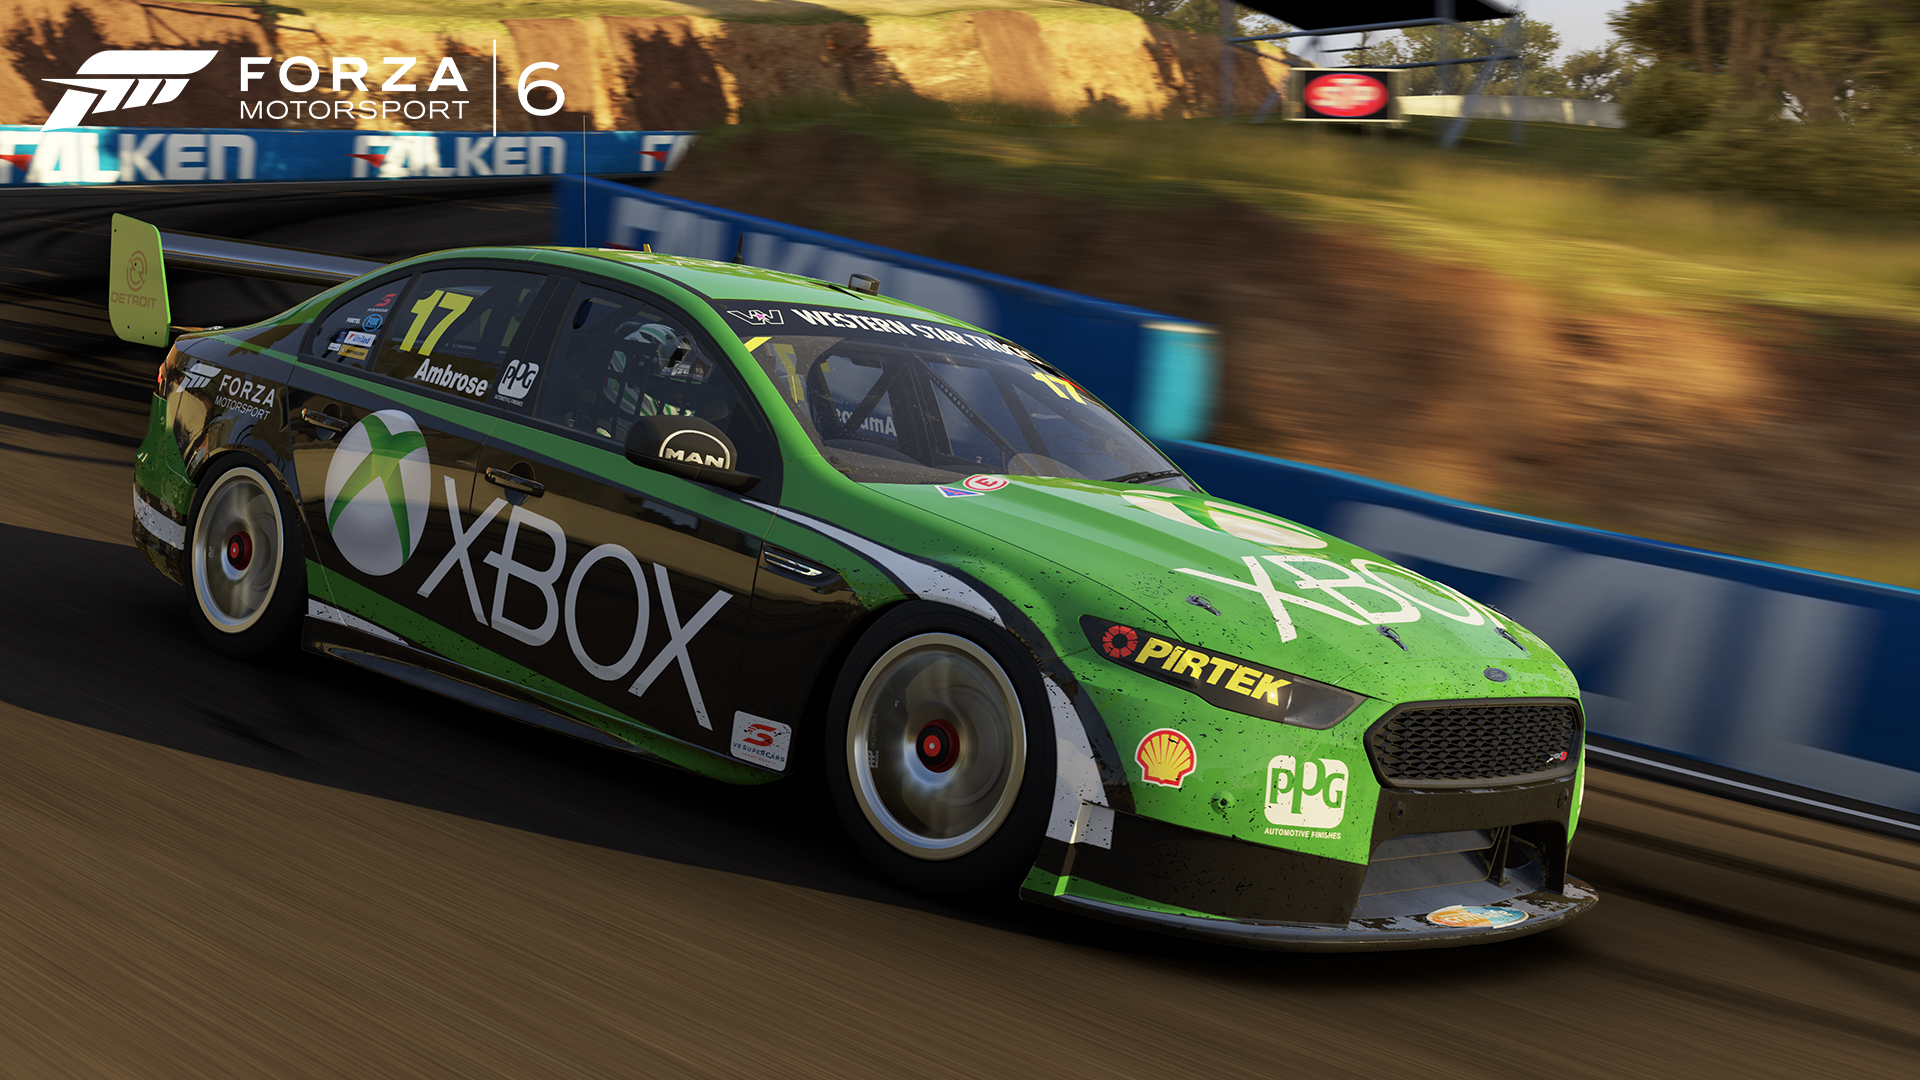 Race Down Under With V8 Supercars Australia In The Forza Motorsport 6 Garage Xbox Wire